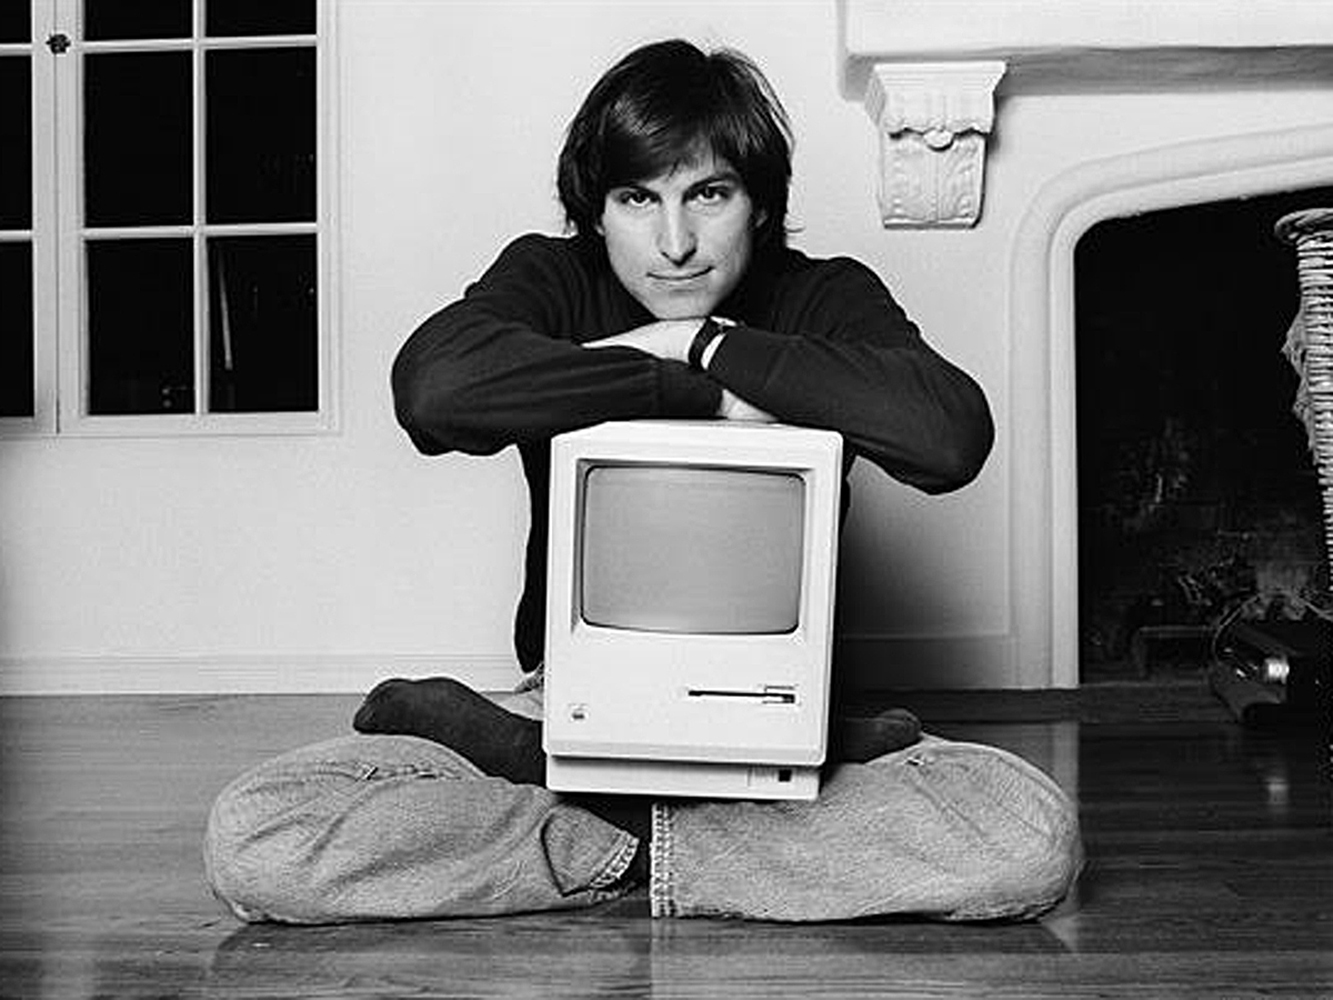 steve-jobs-young-computer-H1